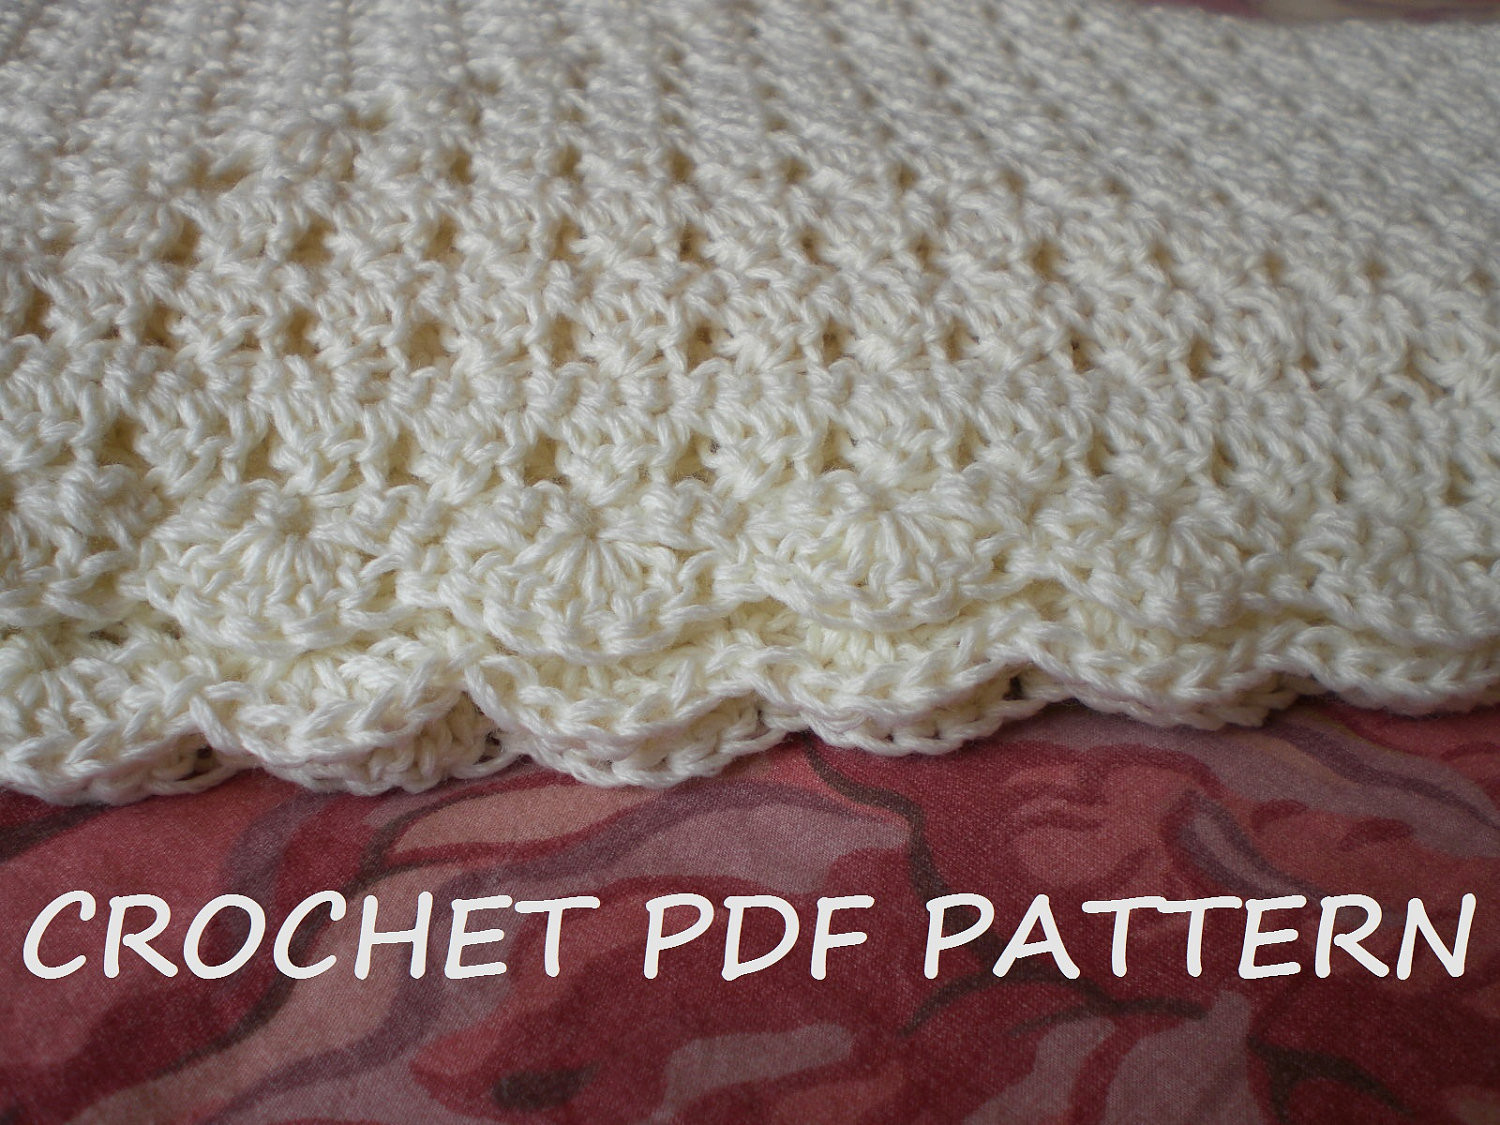 Awesome Baby Blanket Crochet Patterns for Beginners Crochet Blanket Patterns for Beginners Of Charming 50 Pictures Crochet Blanket Patterns for Beginners